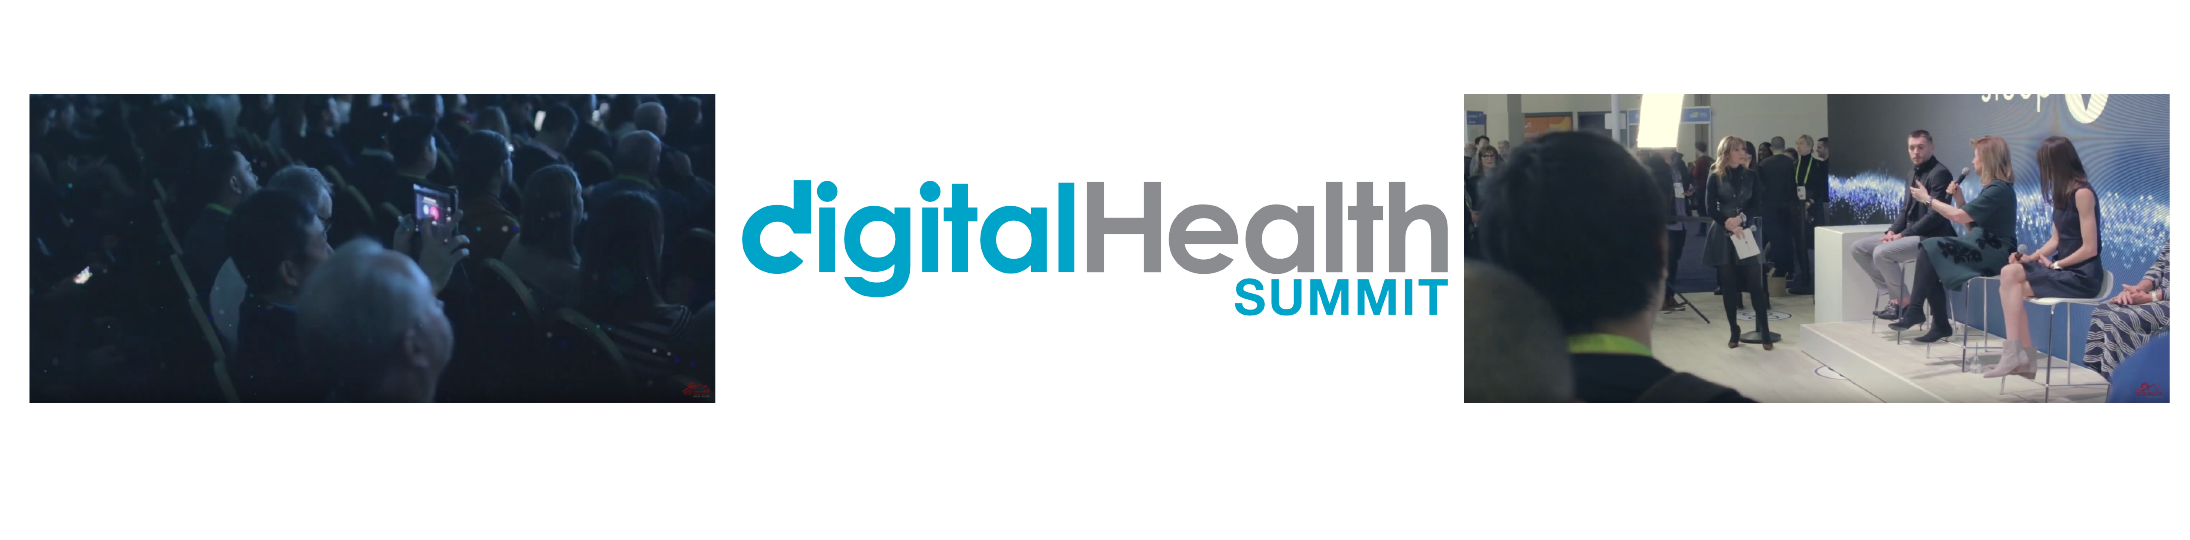 2019 digital health summit